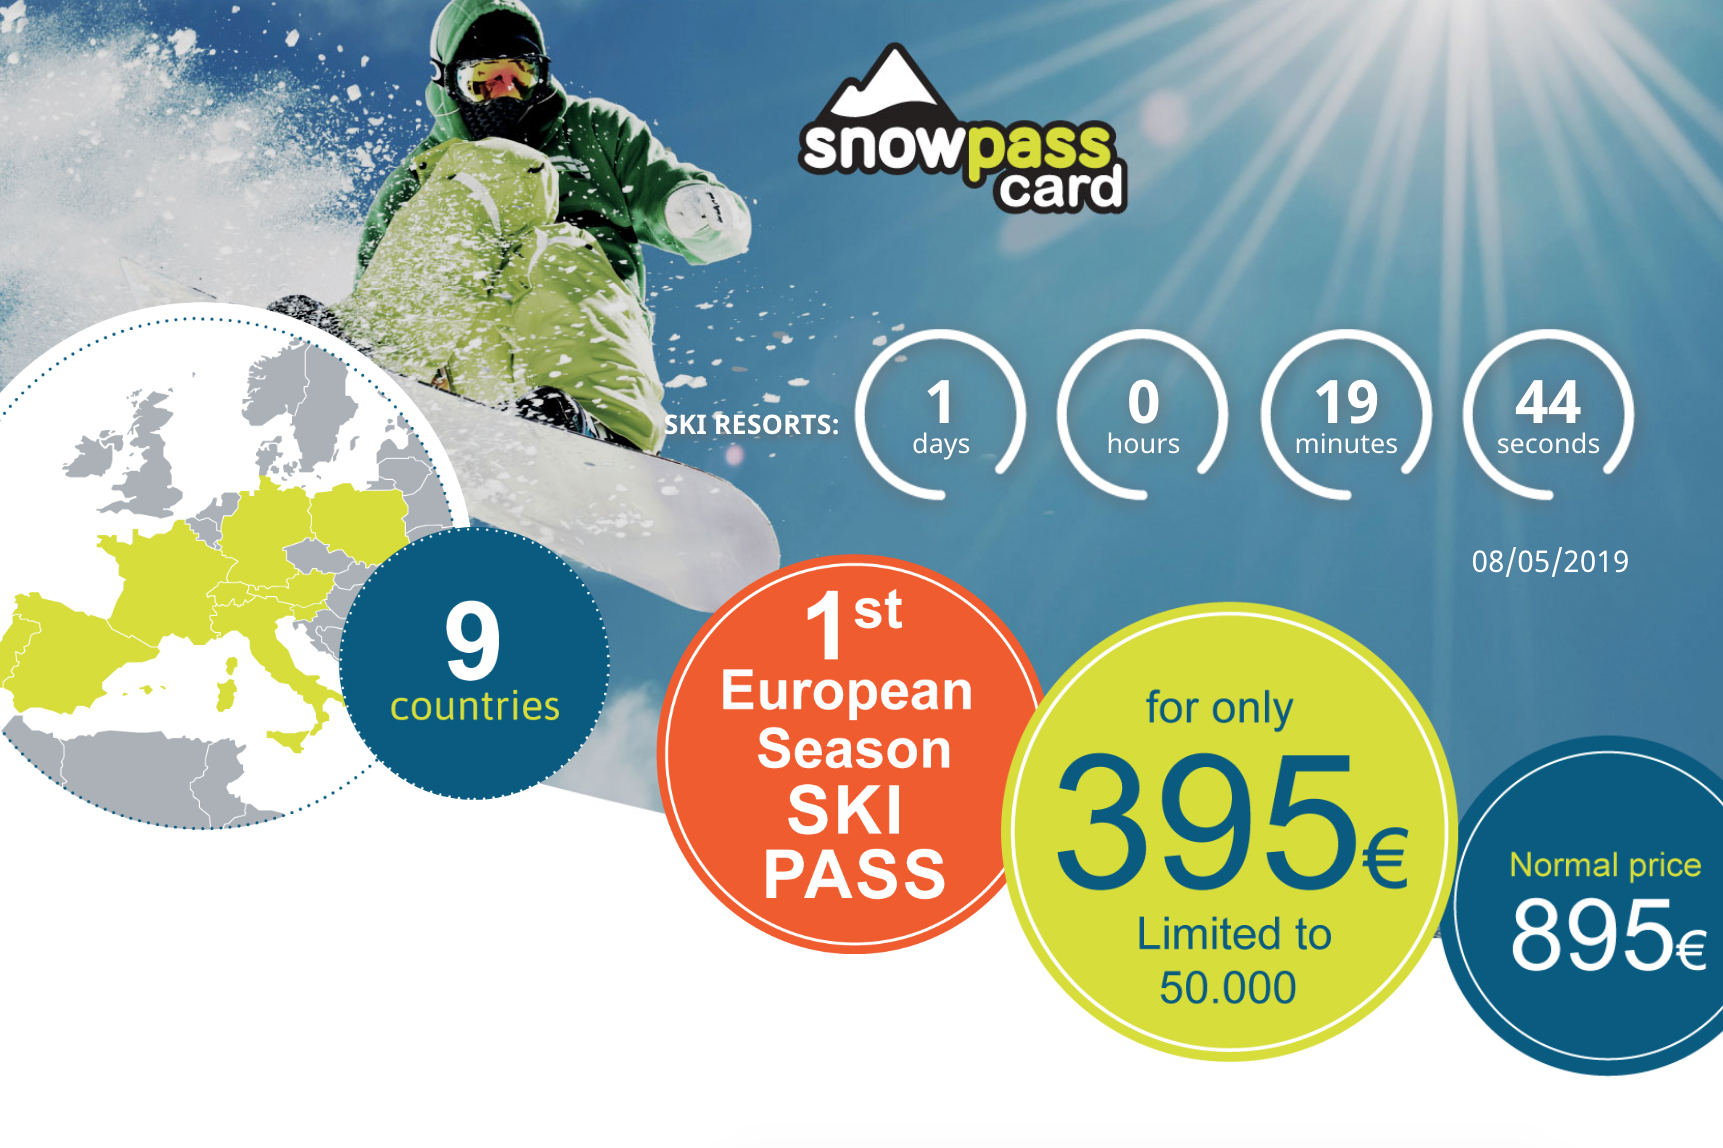 snowpass europe ski pass